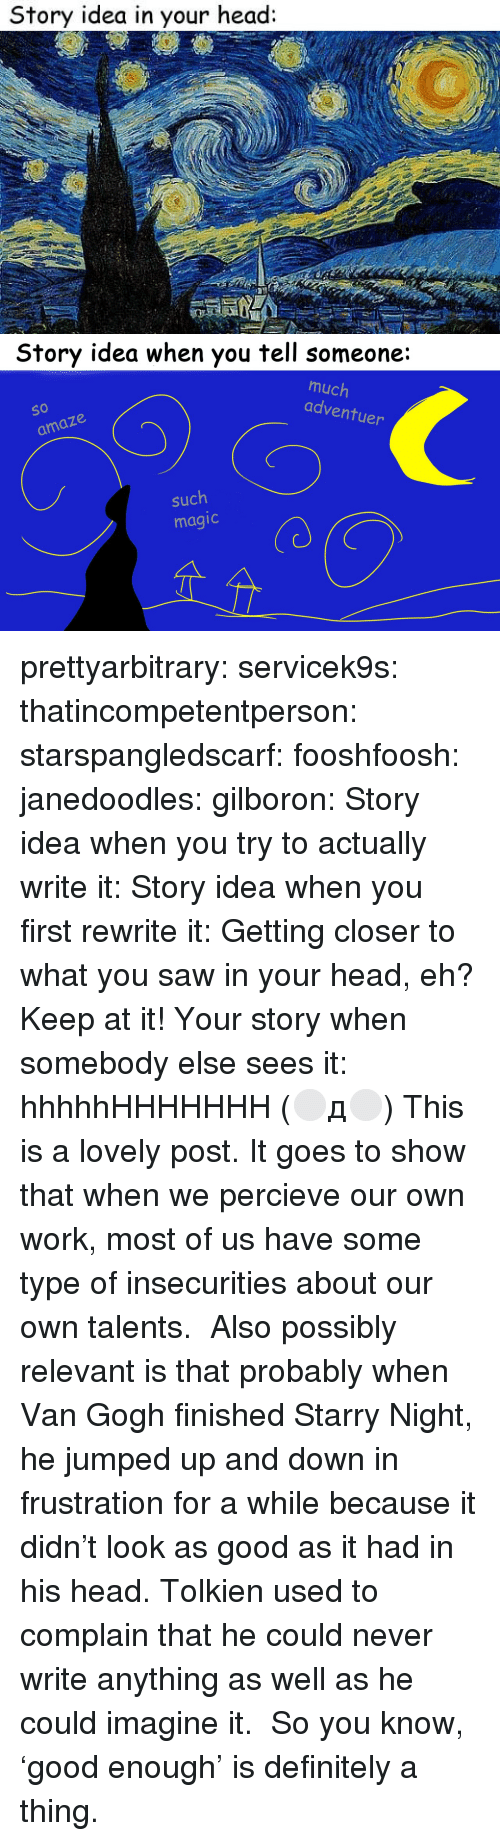 imagine it: Story idea in your head:   Story idea when you tell someone:  much  adventu  So  O 10  er  amaze  such  magic prettyarbitrary:  servicek9s:  thatincompetentperson:  starspangledscarf:  fooshfoosh:  janedoodles:  gilboron:  Story idea when you try to actually write it:  Story idea when you first rewrite it:  Getting closer to what you saw in your head, eh? Keep at it!  Your story when somebody elsesees it:      hhhhhHHHHHHH  (⚪д⚪)  This is a lovely post. It goes to show that when we percieve our own work, most of us have some type of insecurities about our own talents.  Also possibly relevant is that probably when Van Gogh finished Starry Night, he jumped up and down in frustration for a while because it didn't look as good as it had in his head. Tolkien used to complain that he could never write anything as well as he could imagine it. So you know, 'good enough' is definitely a thing.